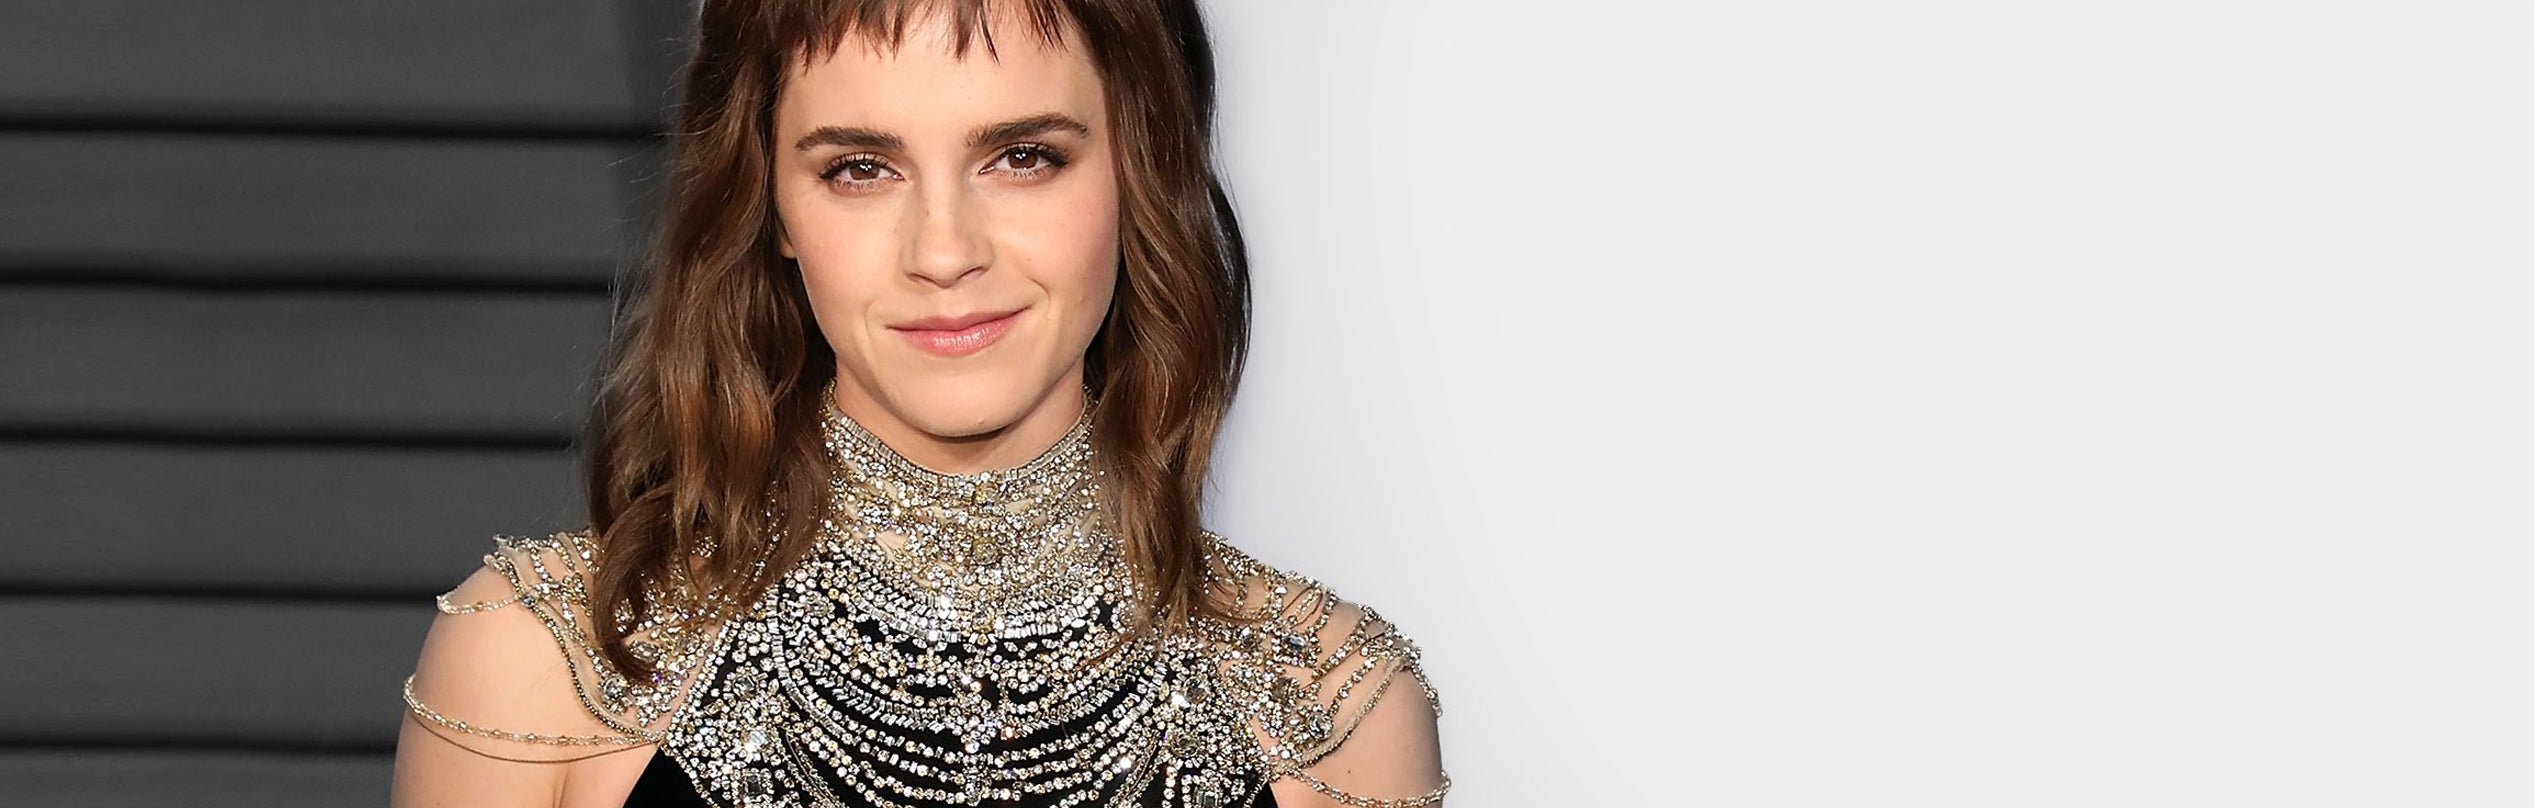 EMMA WATSON<br>TAKES A STAND<br>#TIMESUP